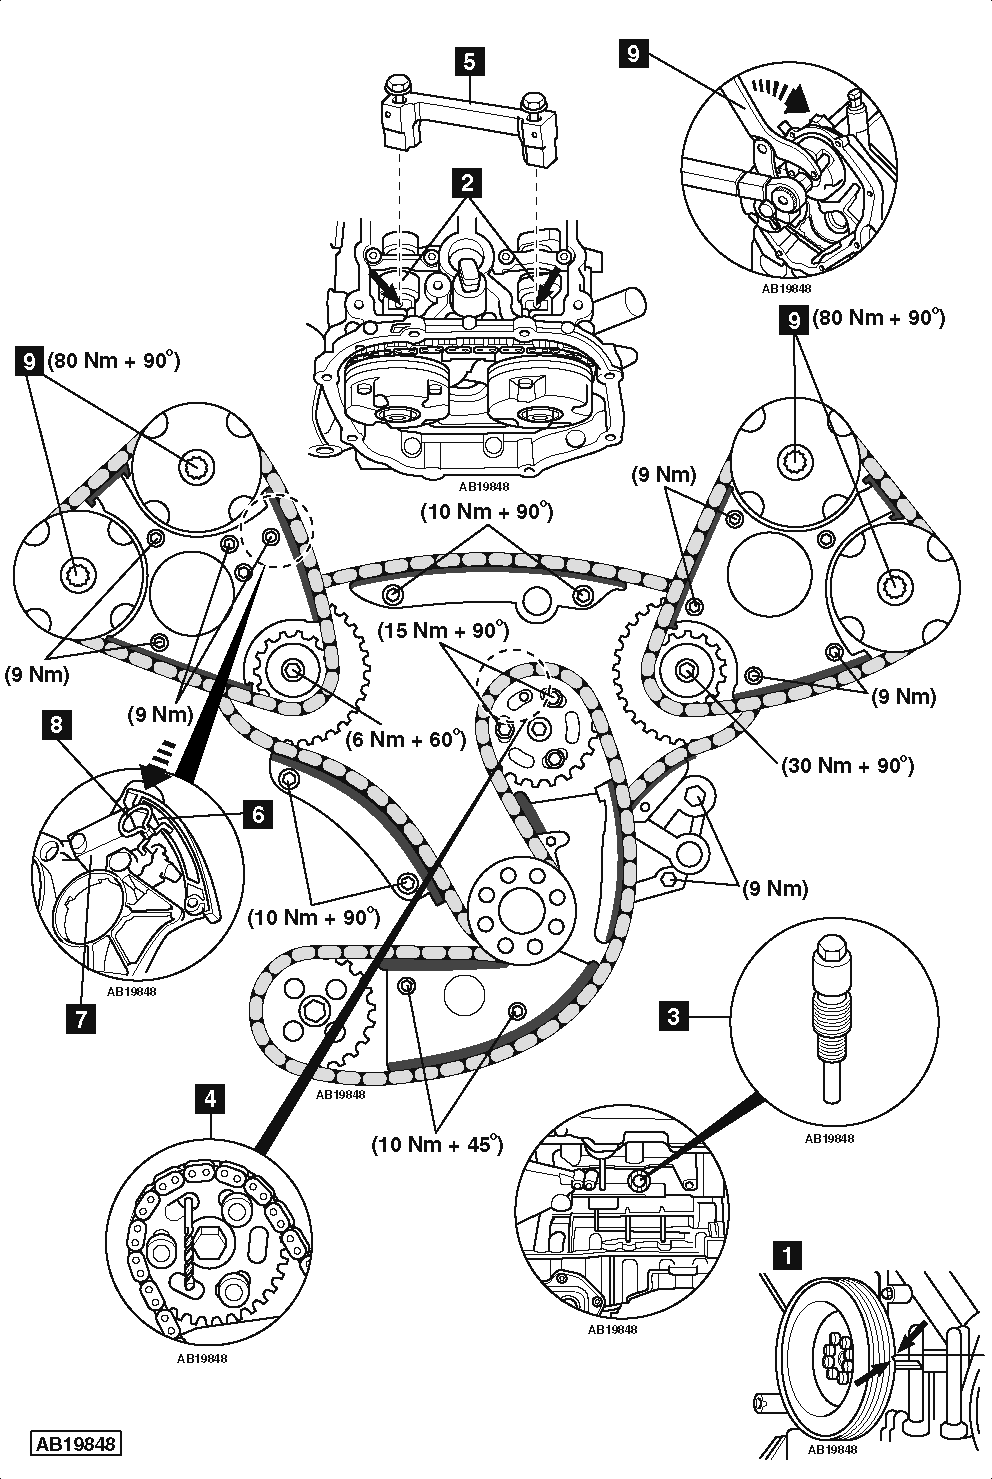 How To Replace Timing Chain On Audi A4 B8 3 2 Fsi Quattro also How To Replace Timing Chain On Peugeot 308 1 6 Thp 2007 2010 likewise Removal and installation 863 also How Your Oil Pumps Pressure Bye Pass Circuit Works together with Index. on ford 5 4 engine removal